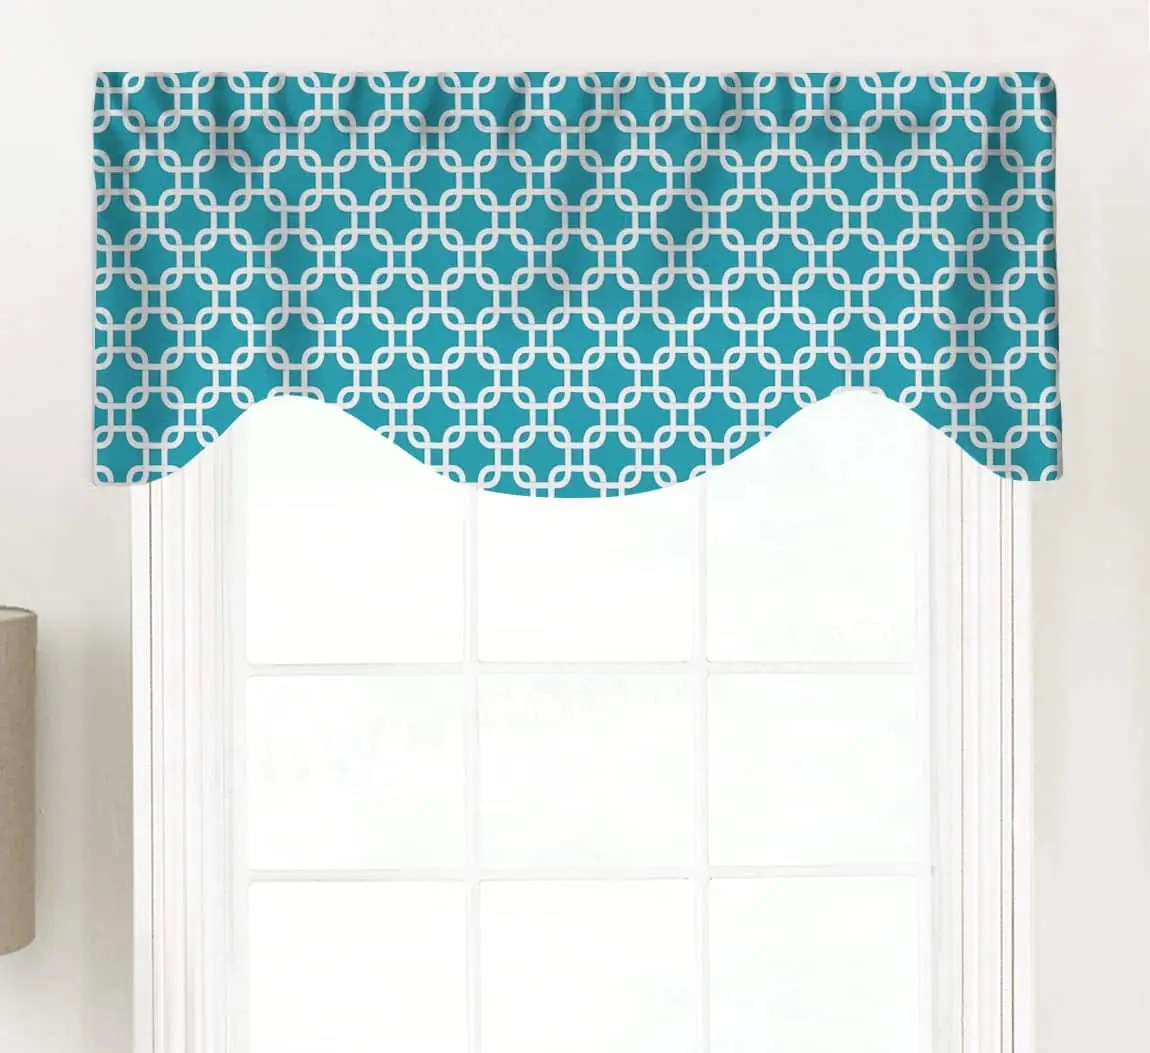 Gotcha Colorful Geometric Lattice Shaped Valance Curtain